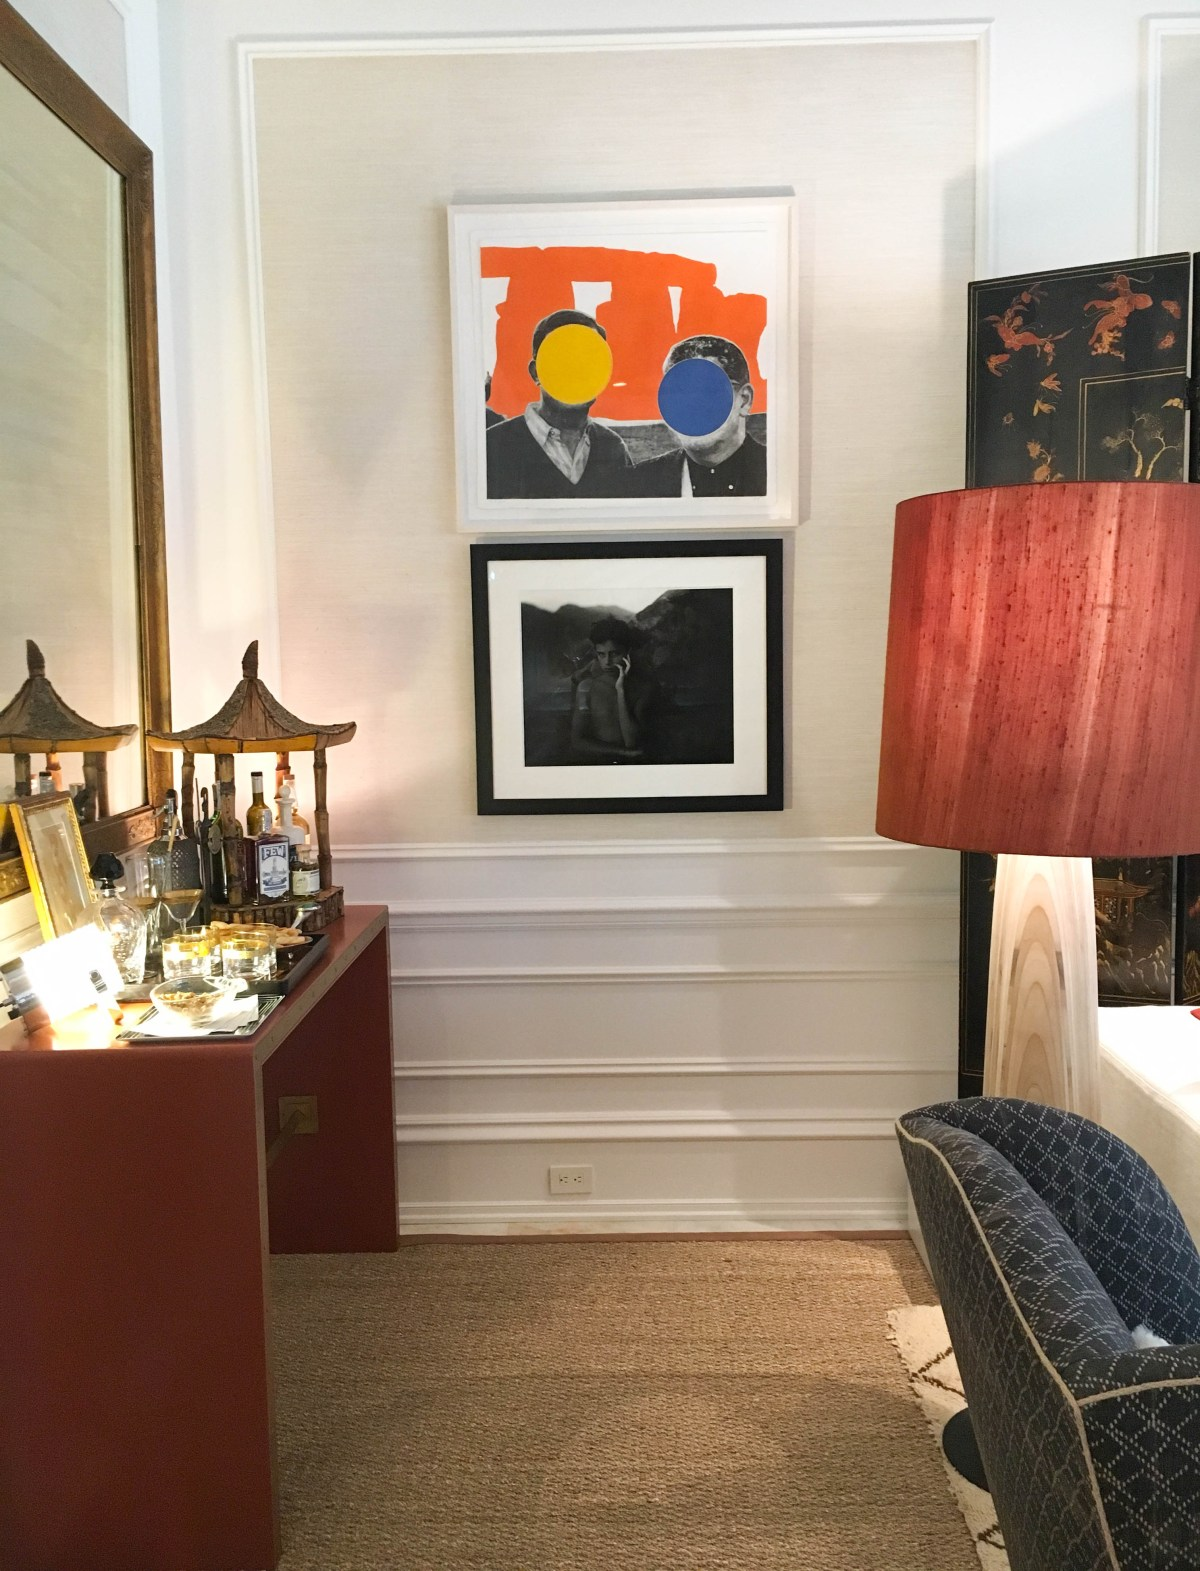 Displayed in the corner of this family room is a cheeky John Baldessari framed print of two gentlemen (standing before an orange stonehenge) whose faces are each hidden by one large colored circle (one yellow and one blue).